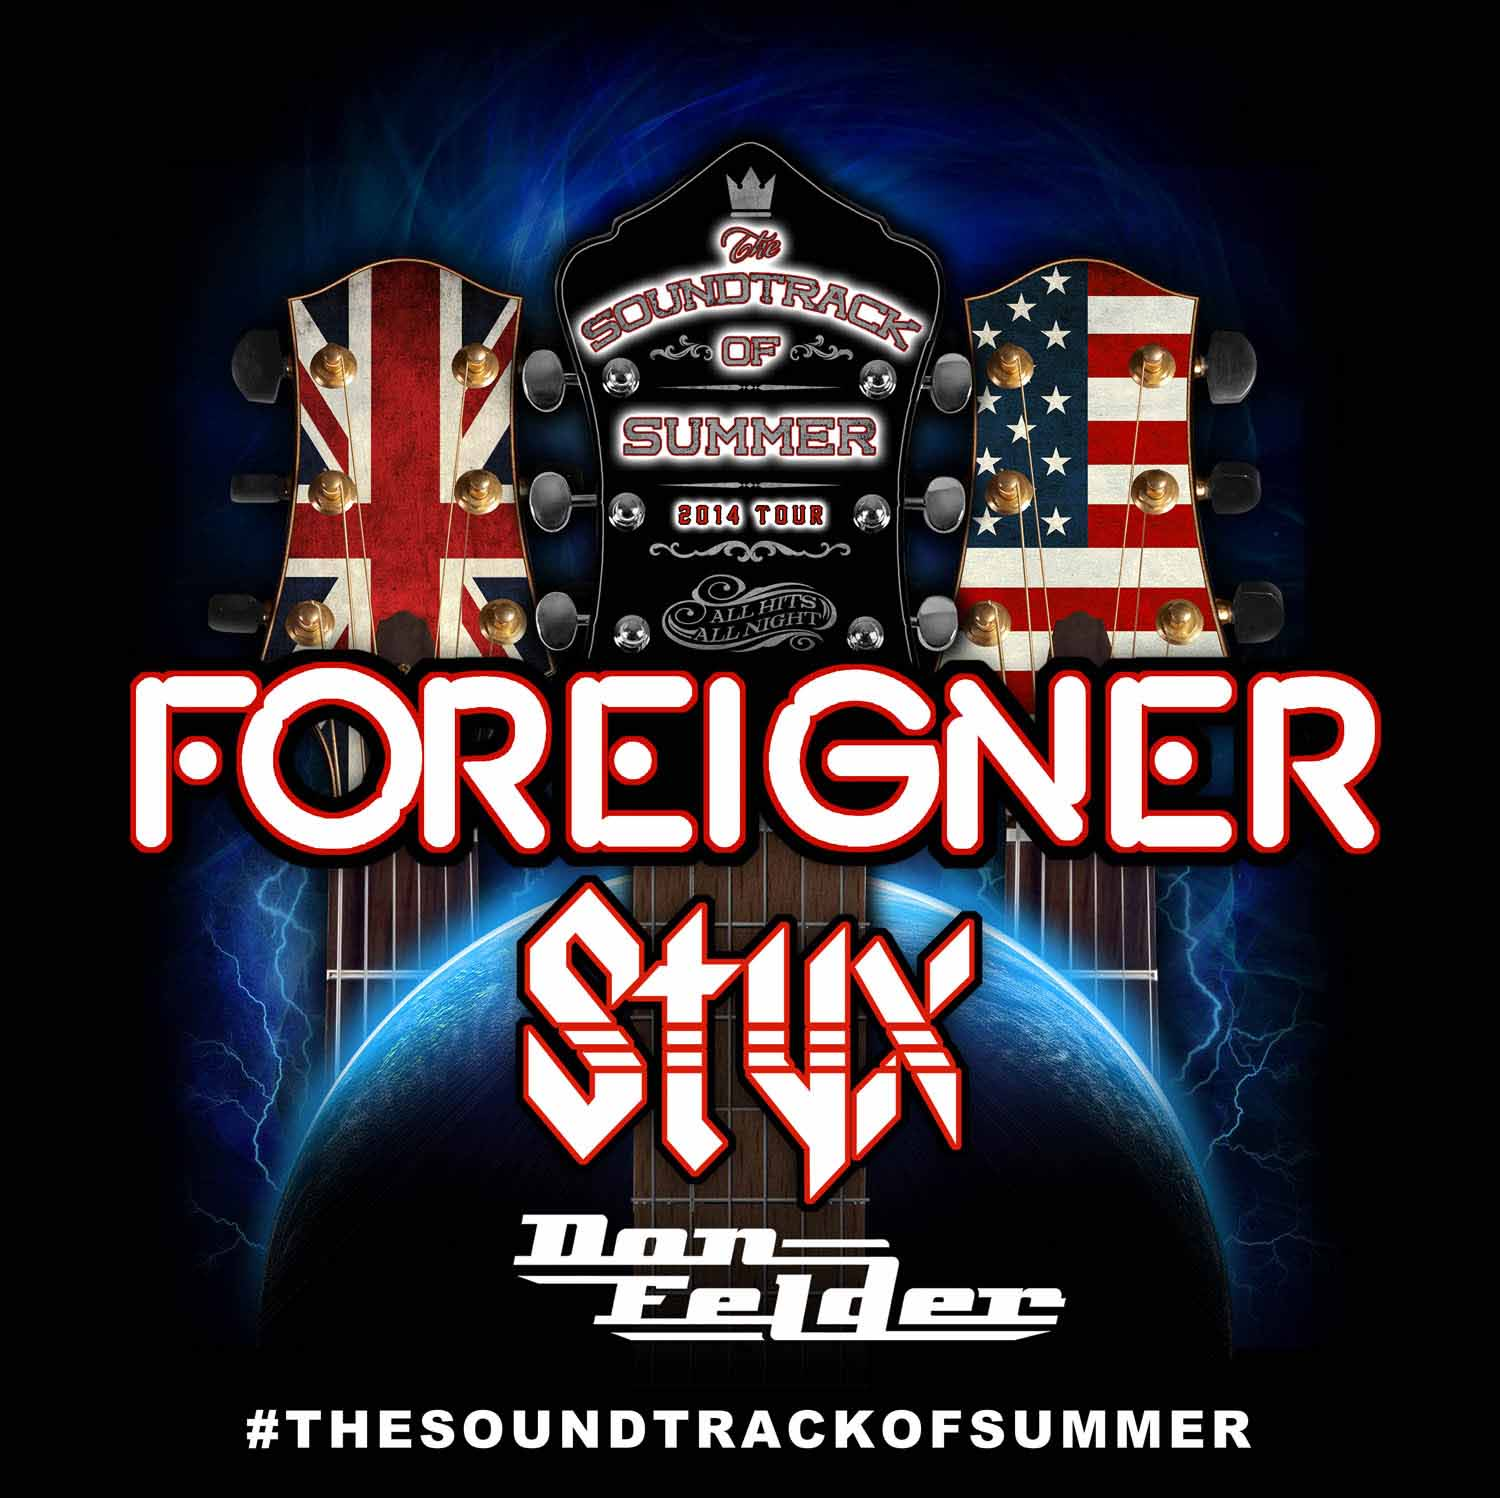 Styx Soundtrack Of Summer Tour